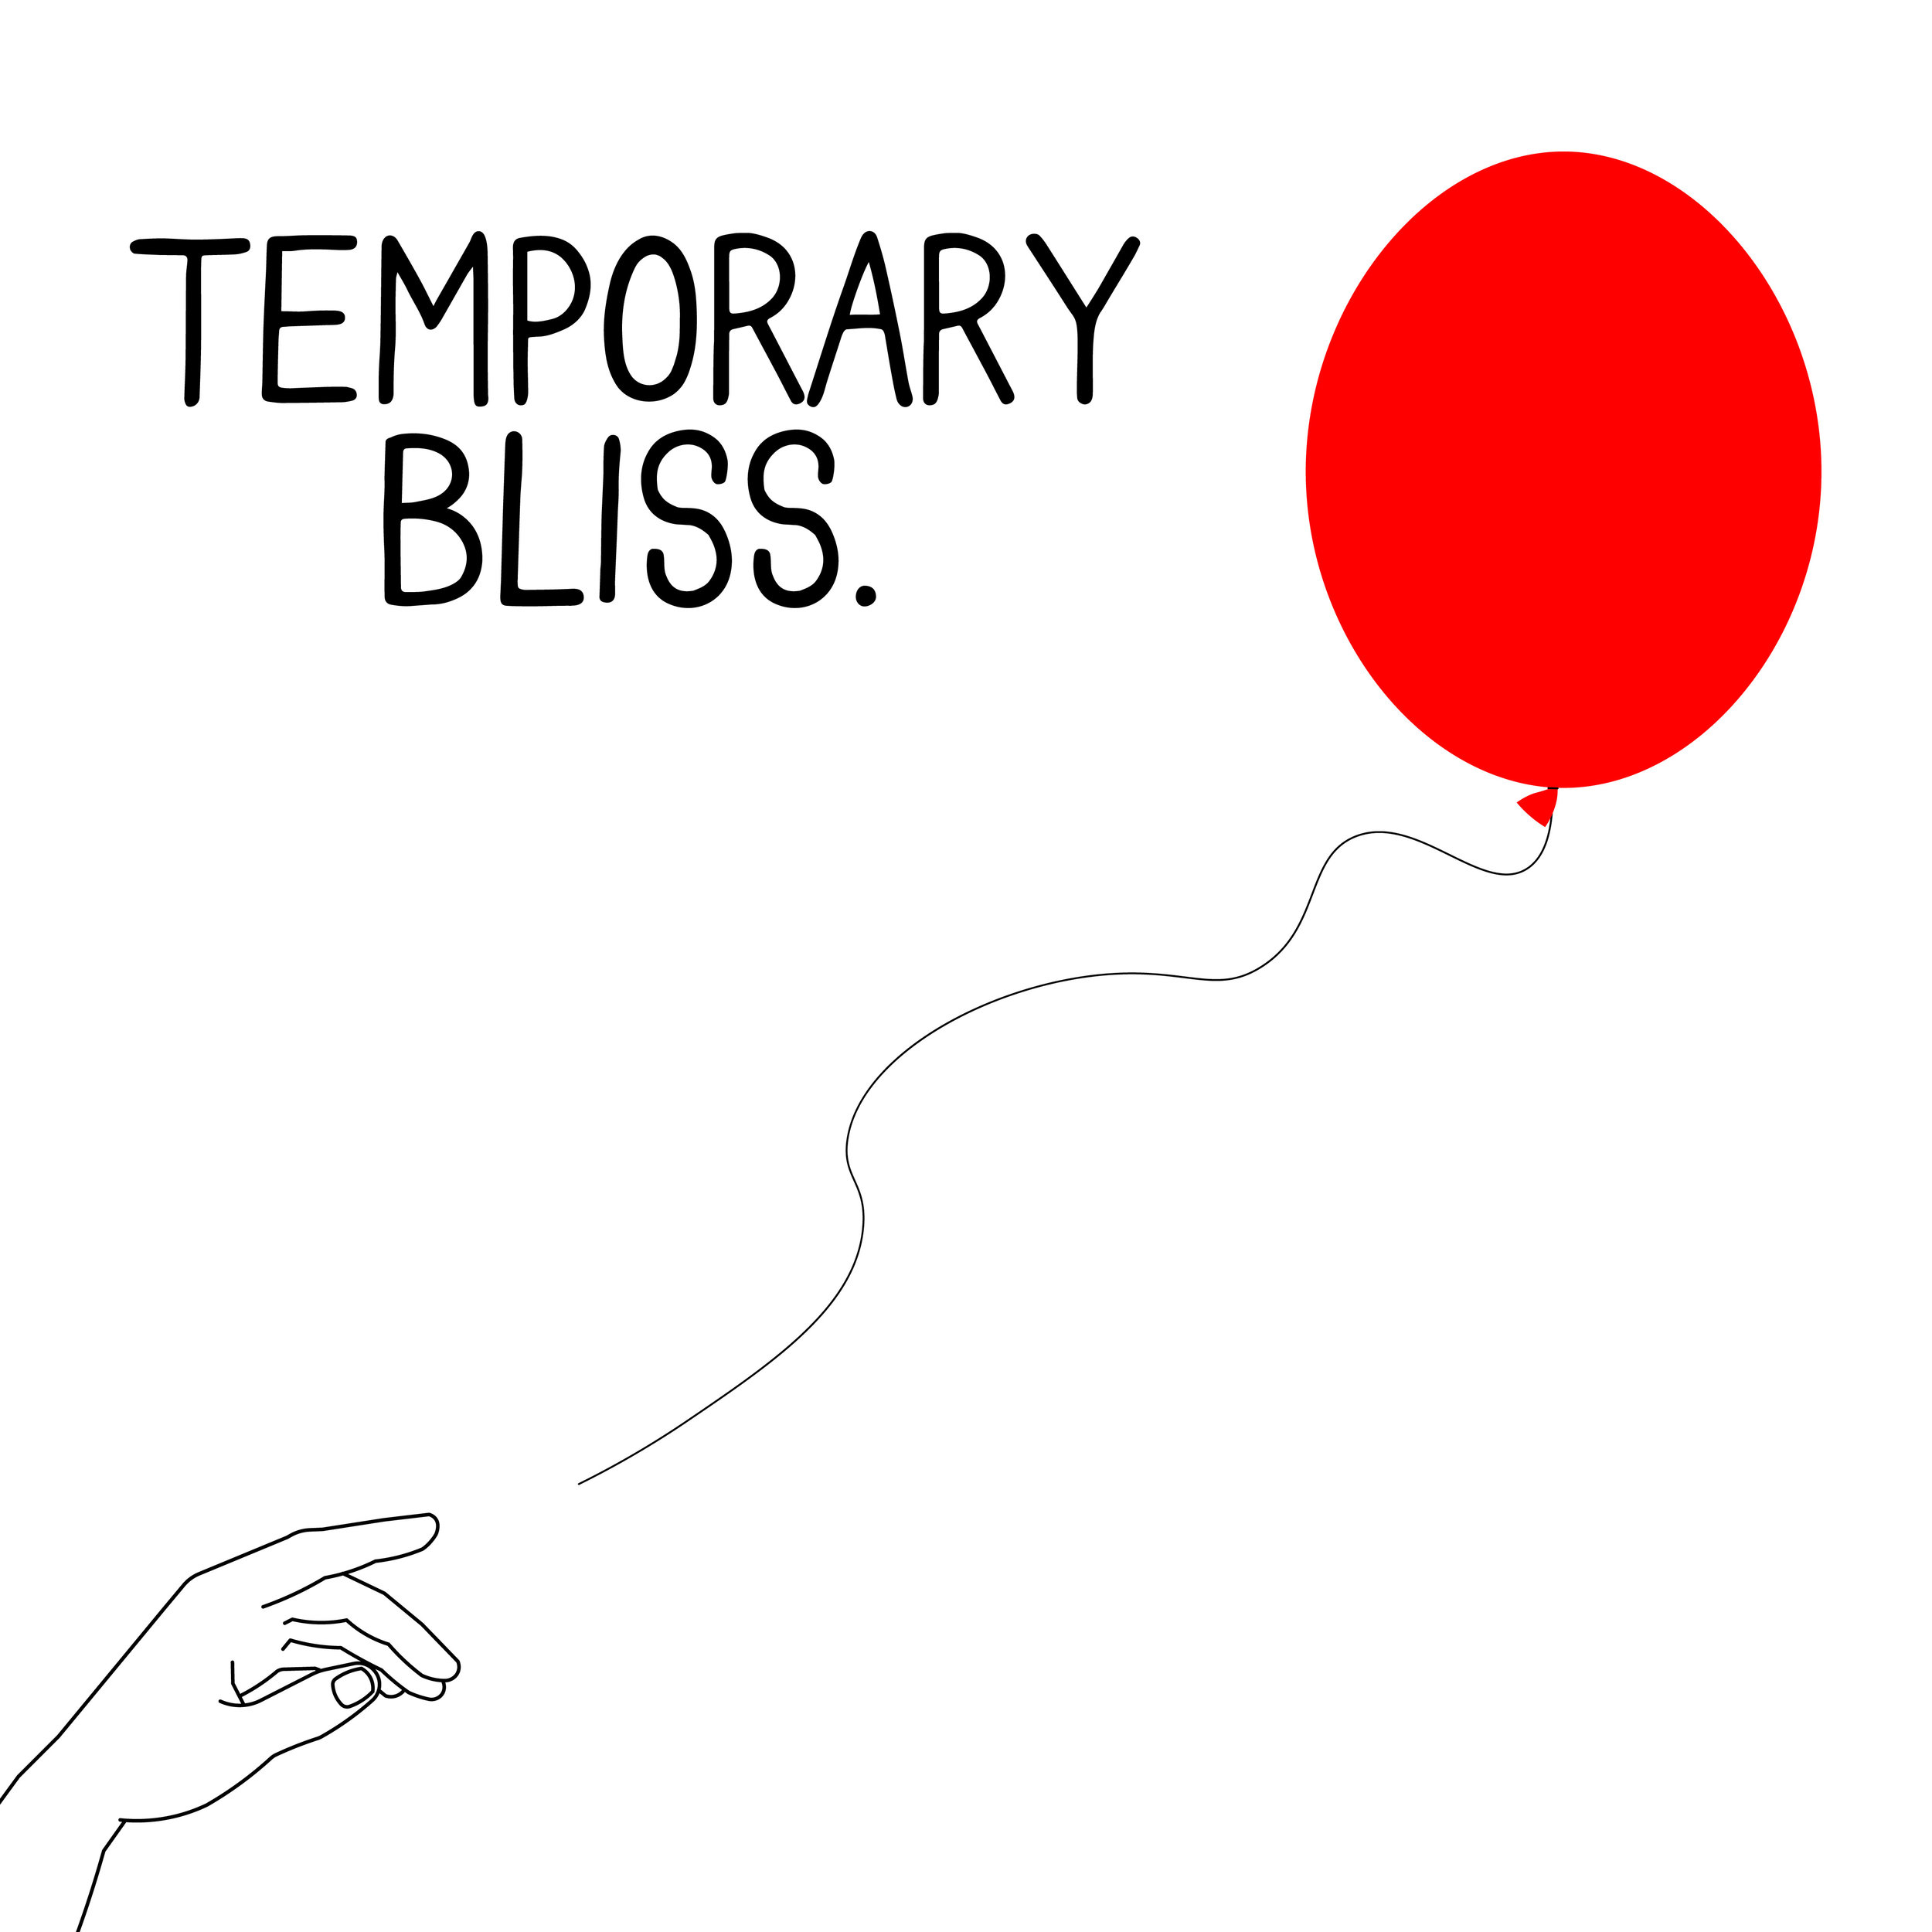 temporarybliss-01.jpg